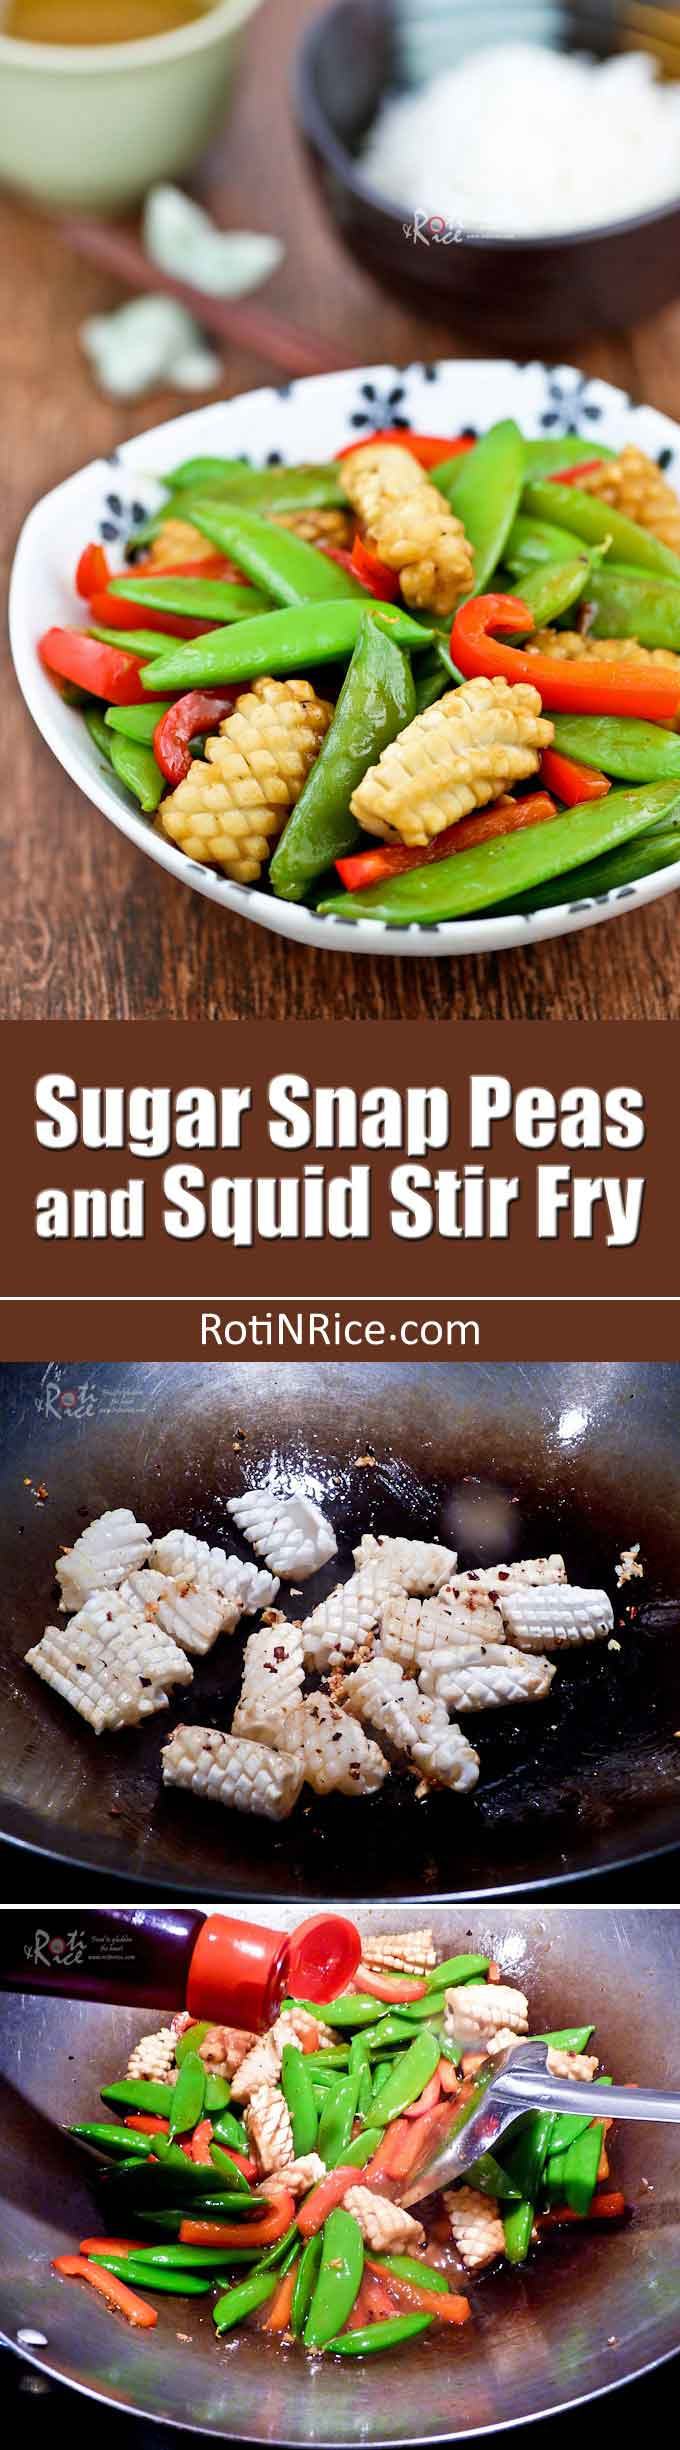 Super quick and easy Sugar Snap Peas and Squid Stir Fry in 20 minutes. The squid is tender and juicy while the sugar snap peas are sweet, crunchy, and tasty. | RotiNRice.com